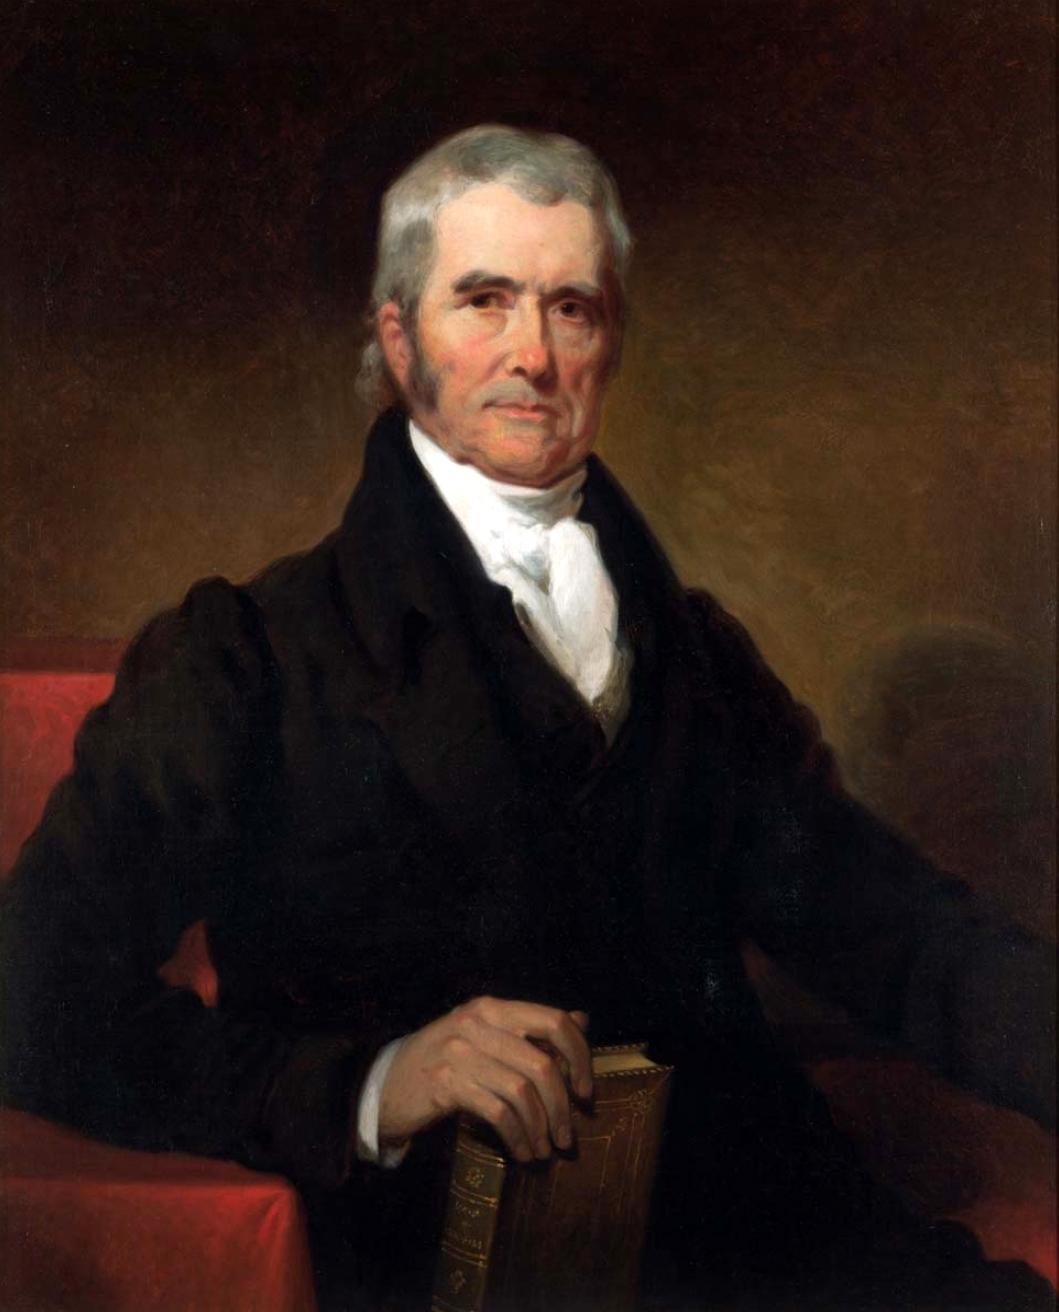 mc culloch v maryland 1819 essay Where can you find a summary of mcculloch v maryland what did mcculloch v maryland establish  mcculloch v maryland case mcculloch v maryland 1819.